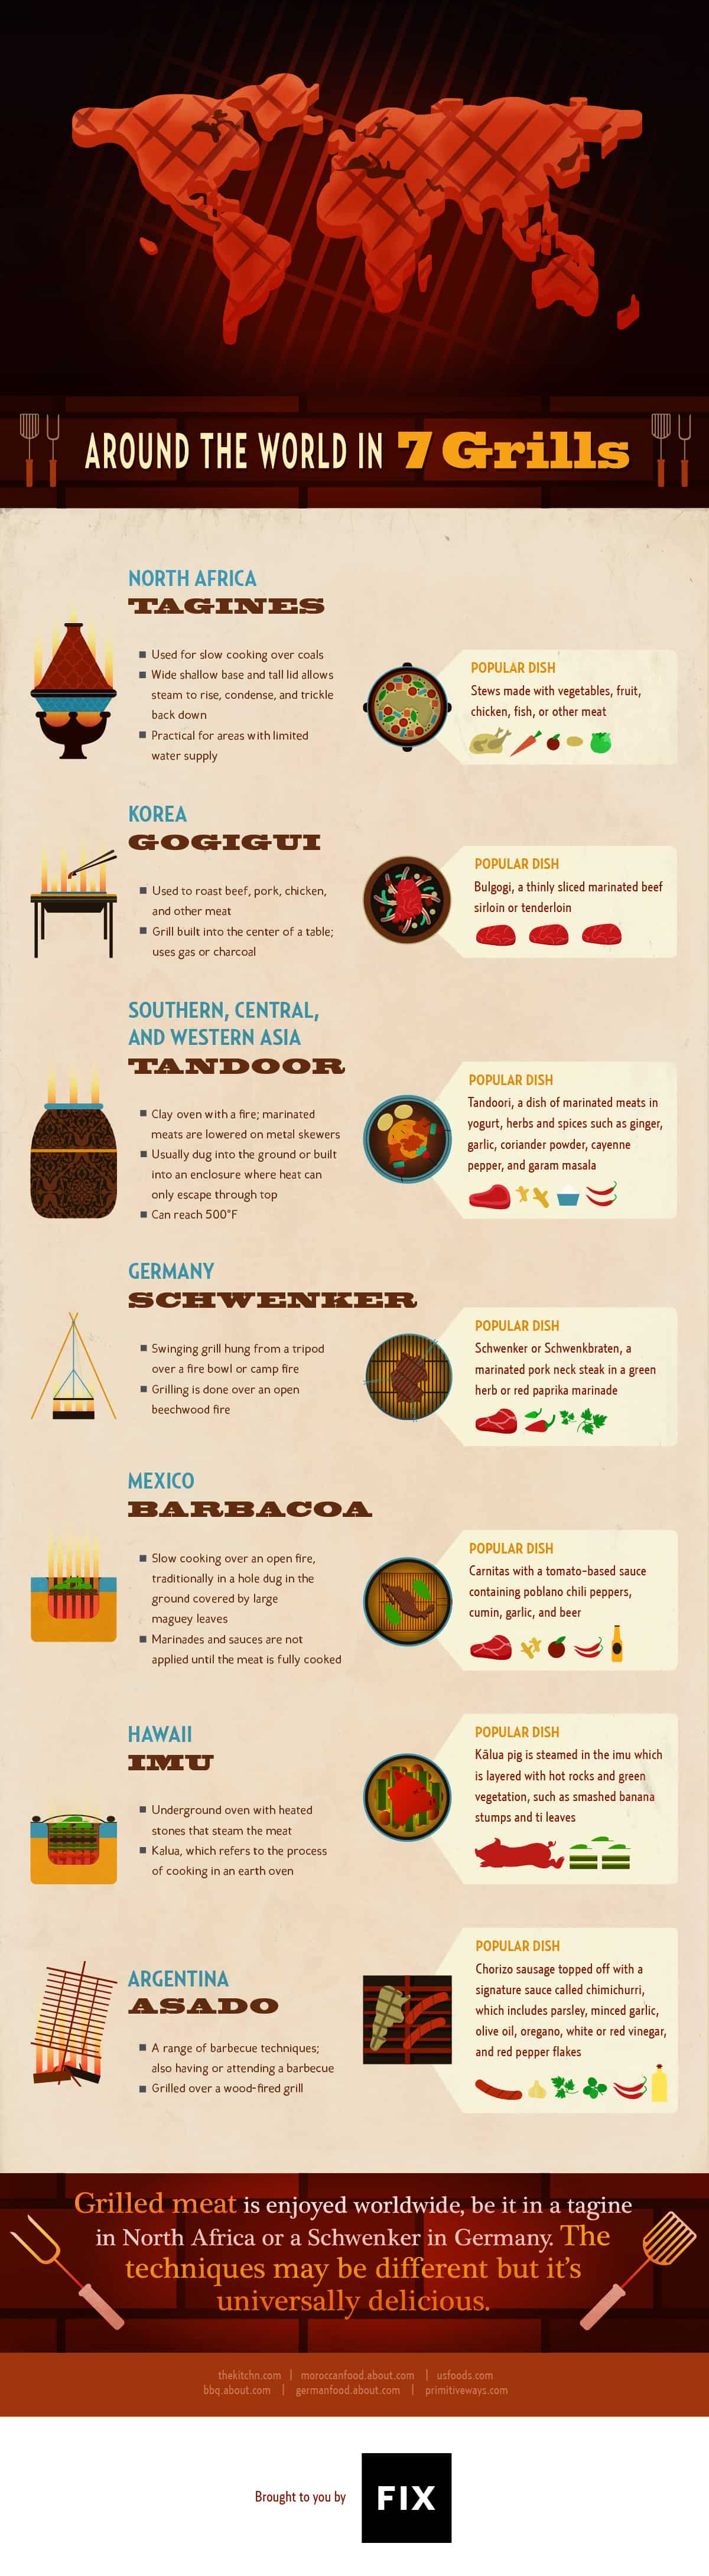 Around the World in 7 Grills: Grills Around the World Infographic